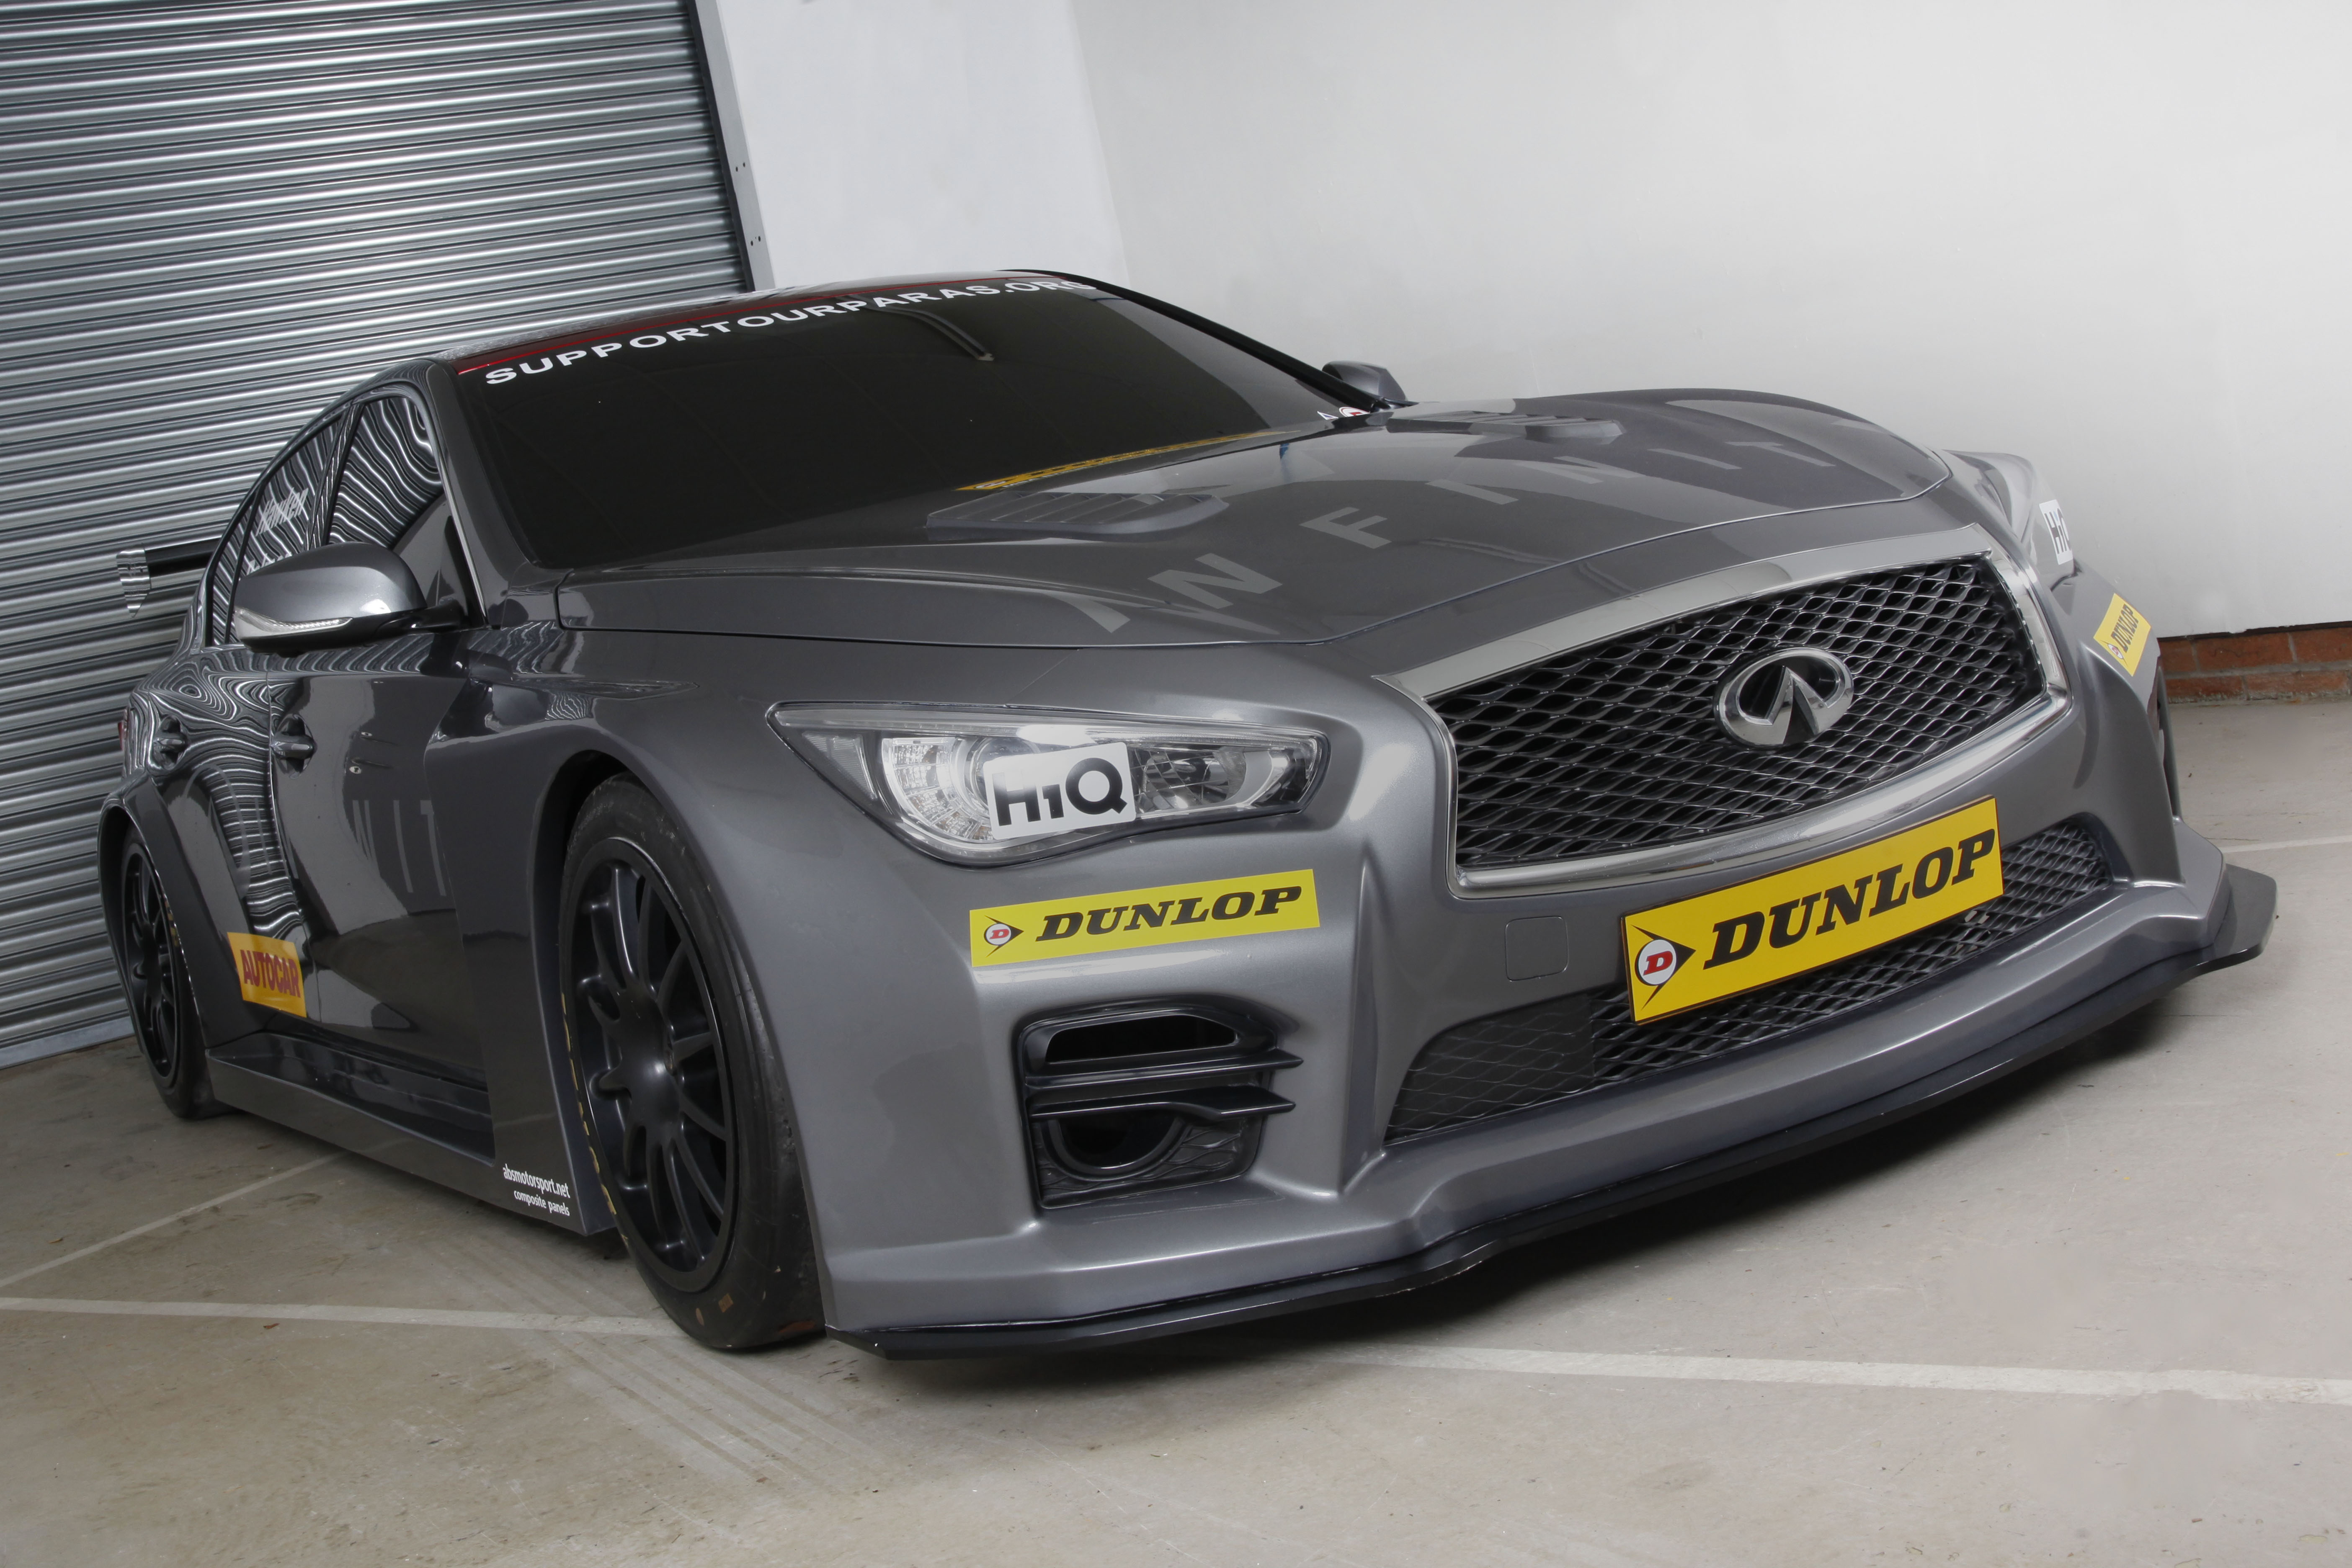 mats cars speed limite floor infiniti infinity top limited